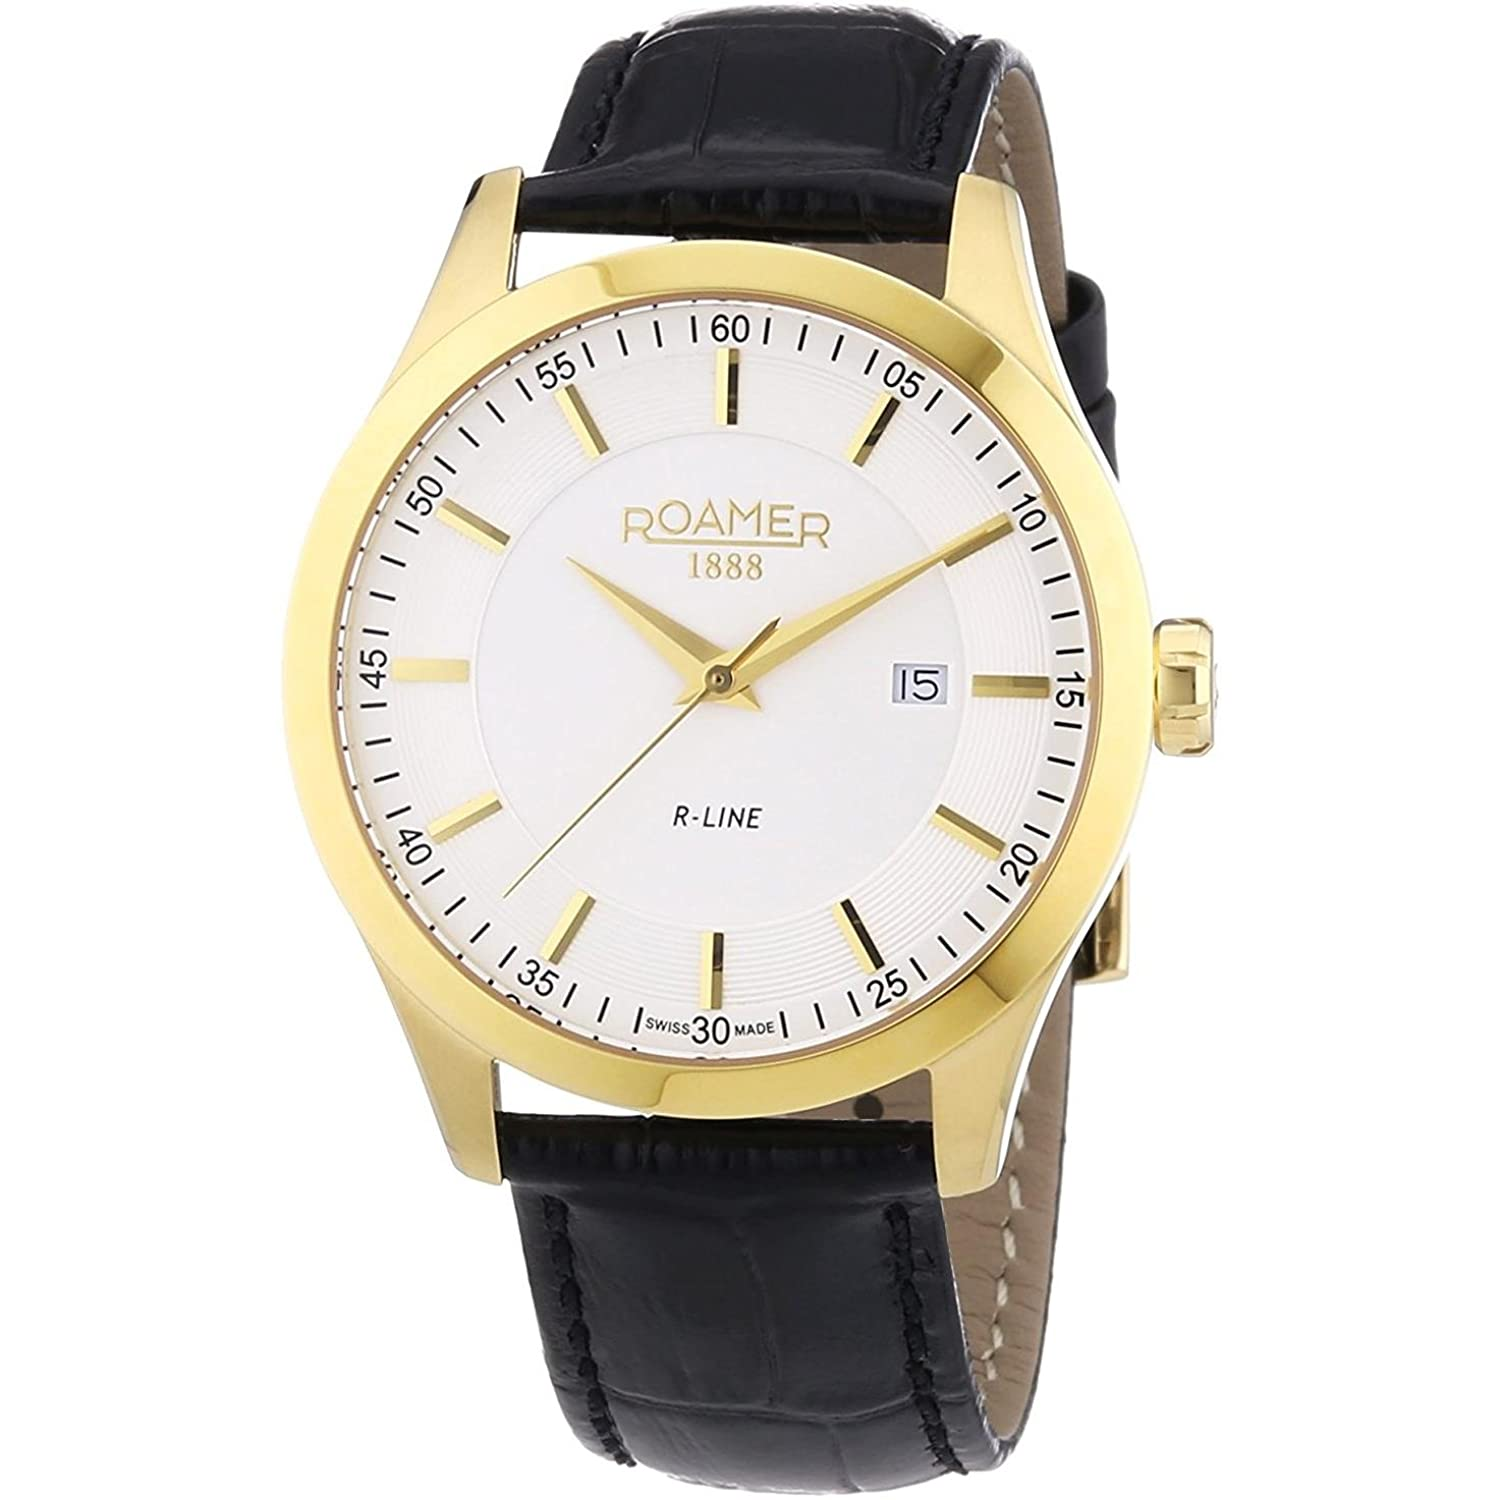 ROAMER OF SWITZERLAND HERREN-ARMBANDUHR 40MM QUARZ 943856 48 25 09